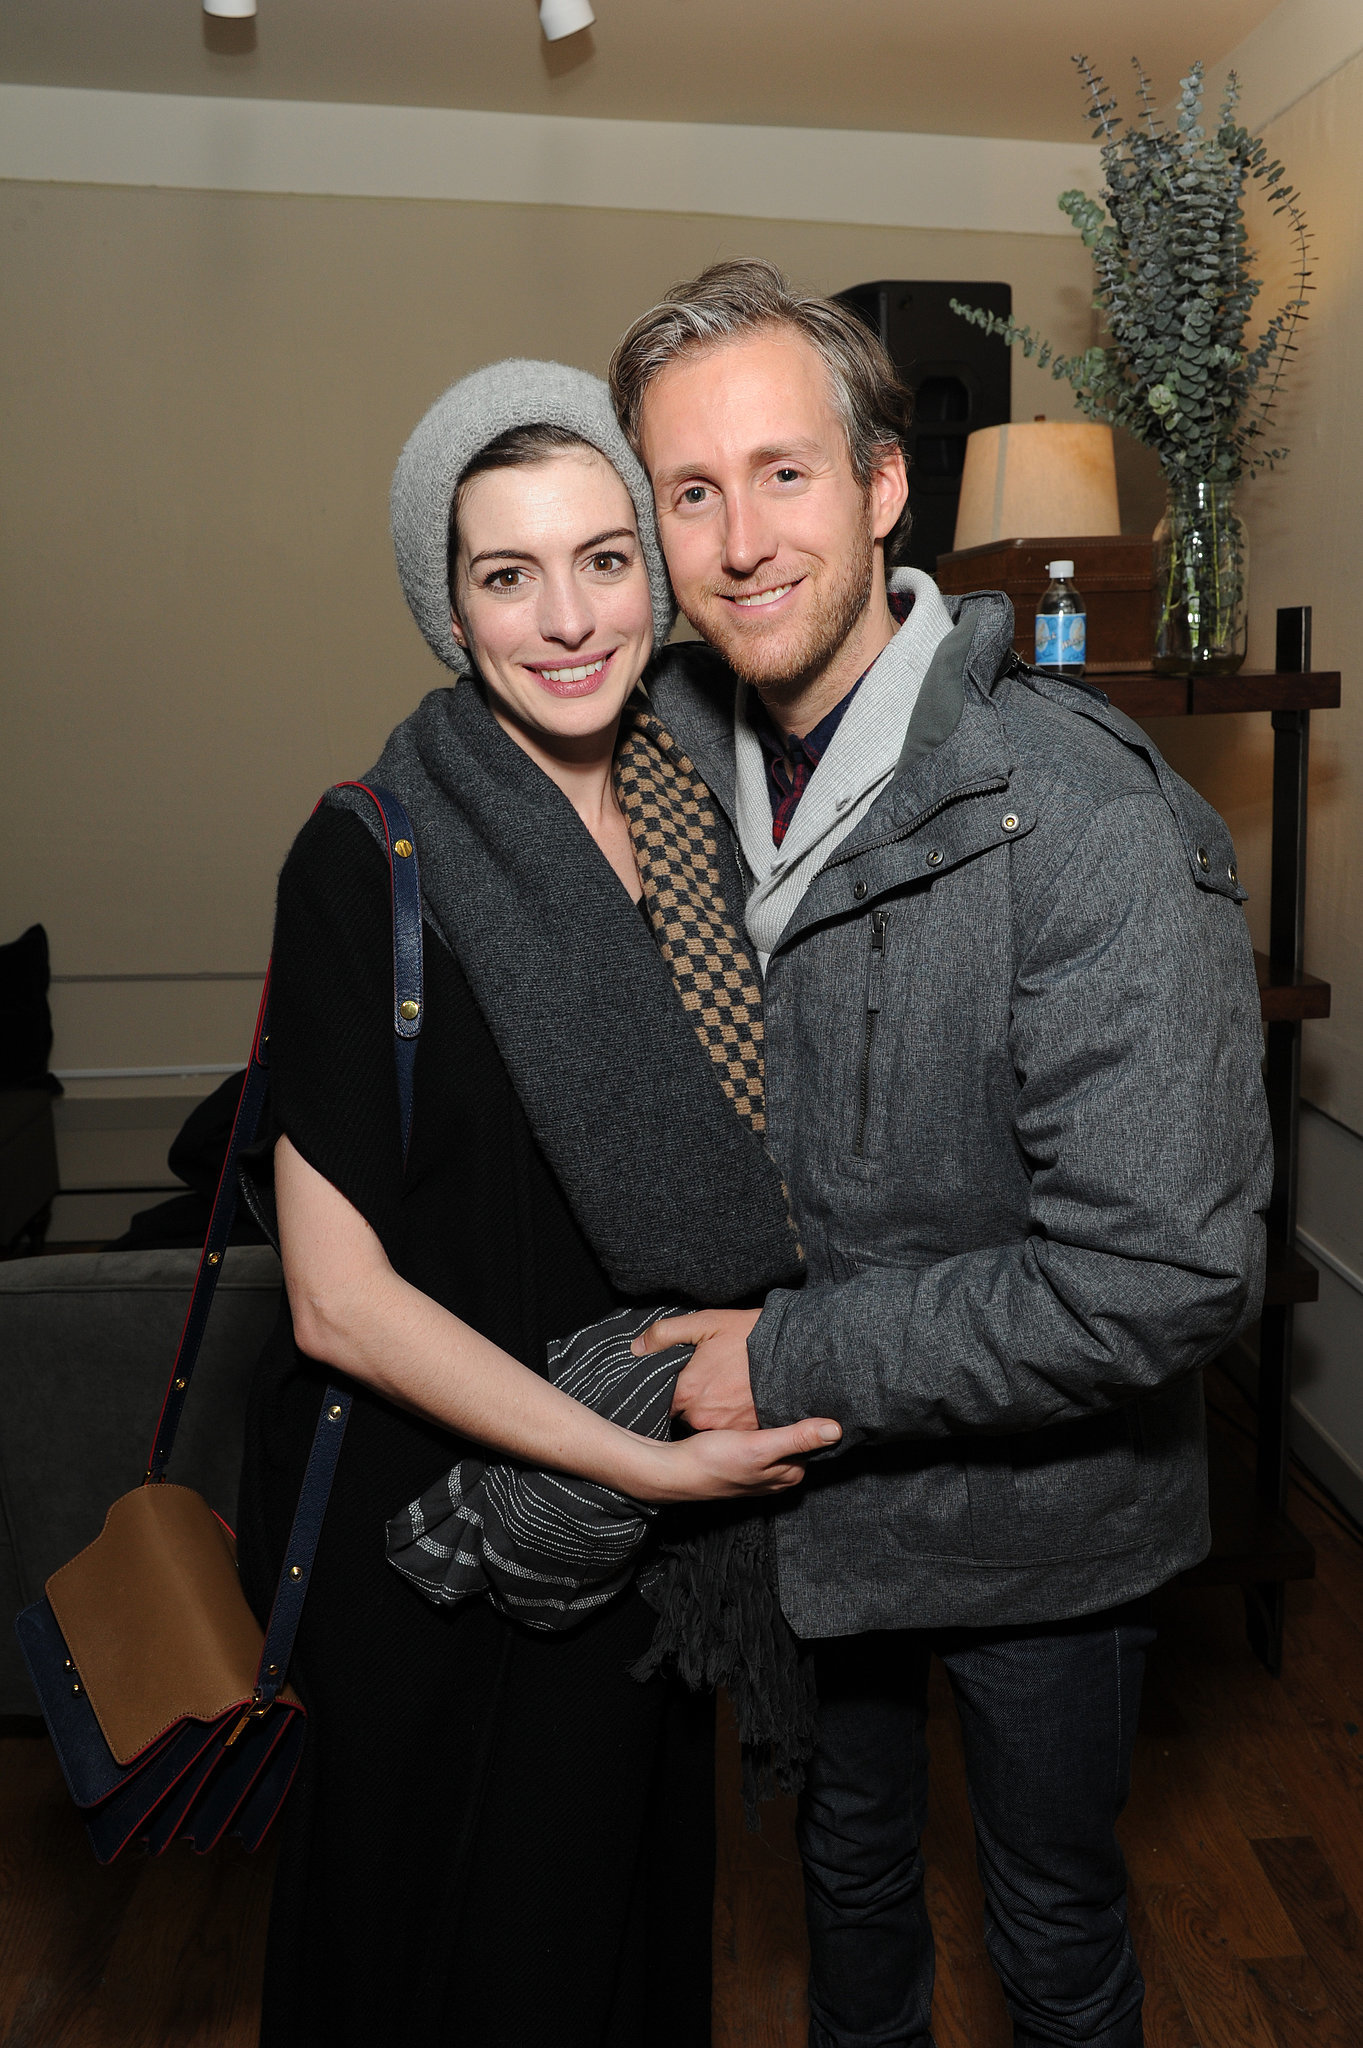 Anne Hathaway and her husband, Adam Shulman, were adorable ...